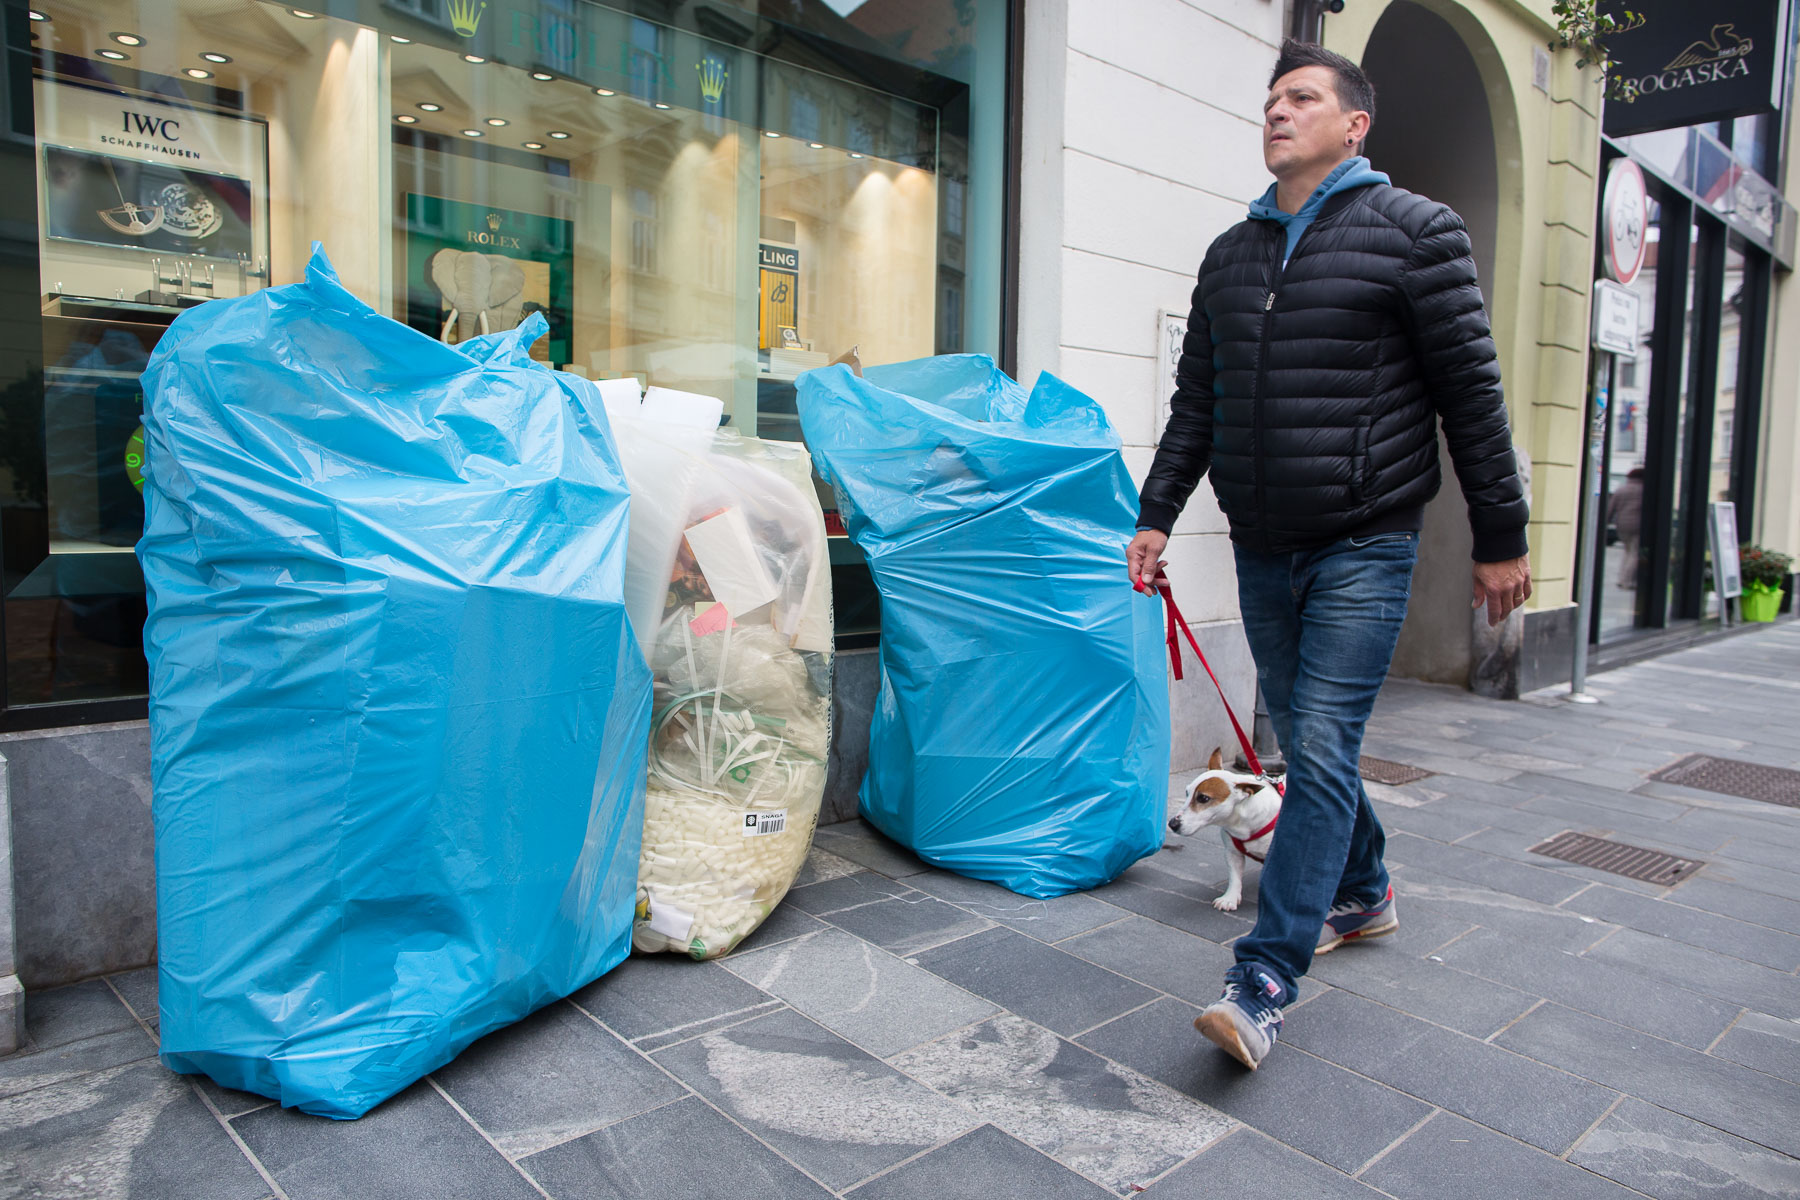 Small business that produce large ammounts of waste in the city center must buy bags for waste separation and leave them on their doorstep in the morning for door to door collection.